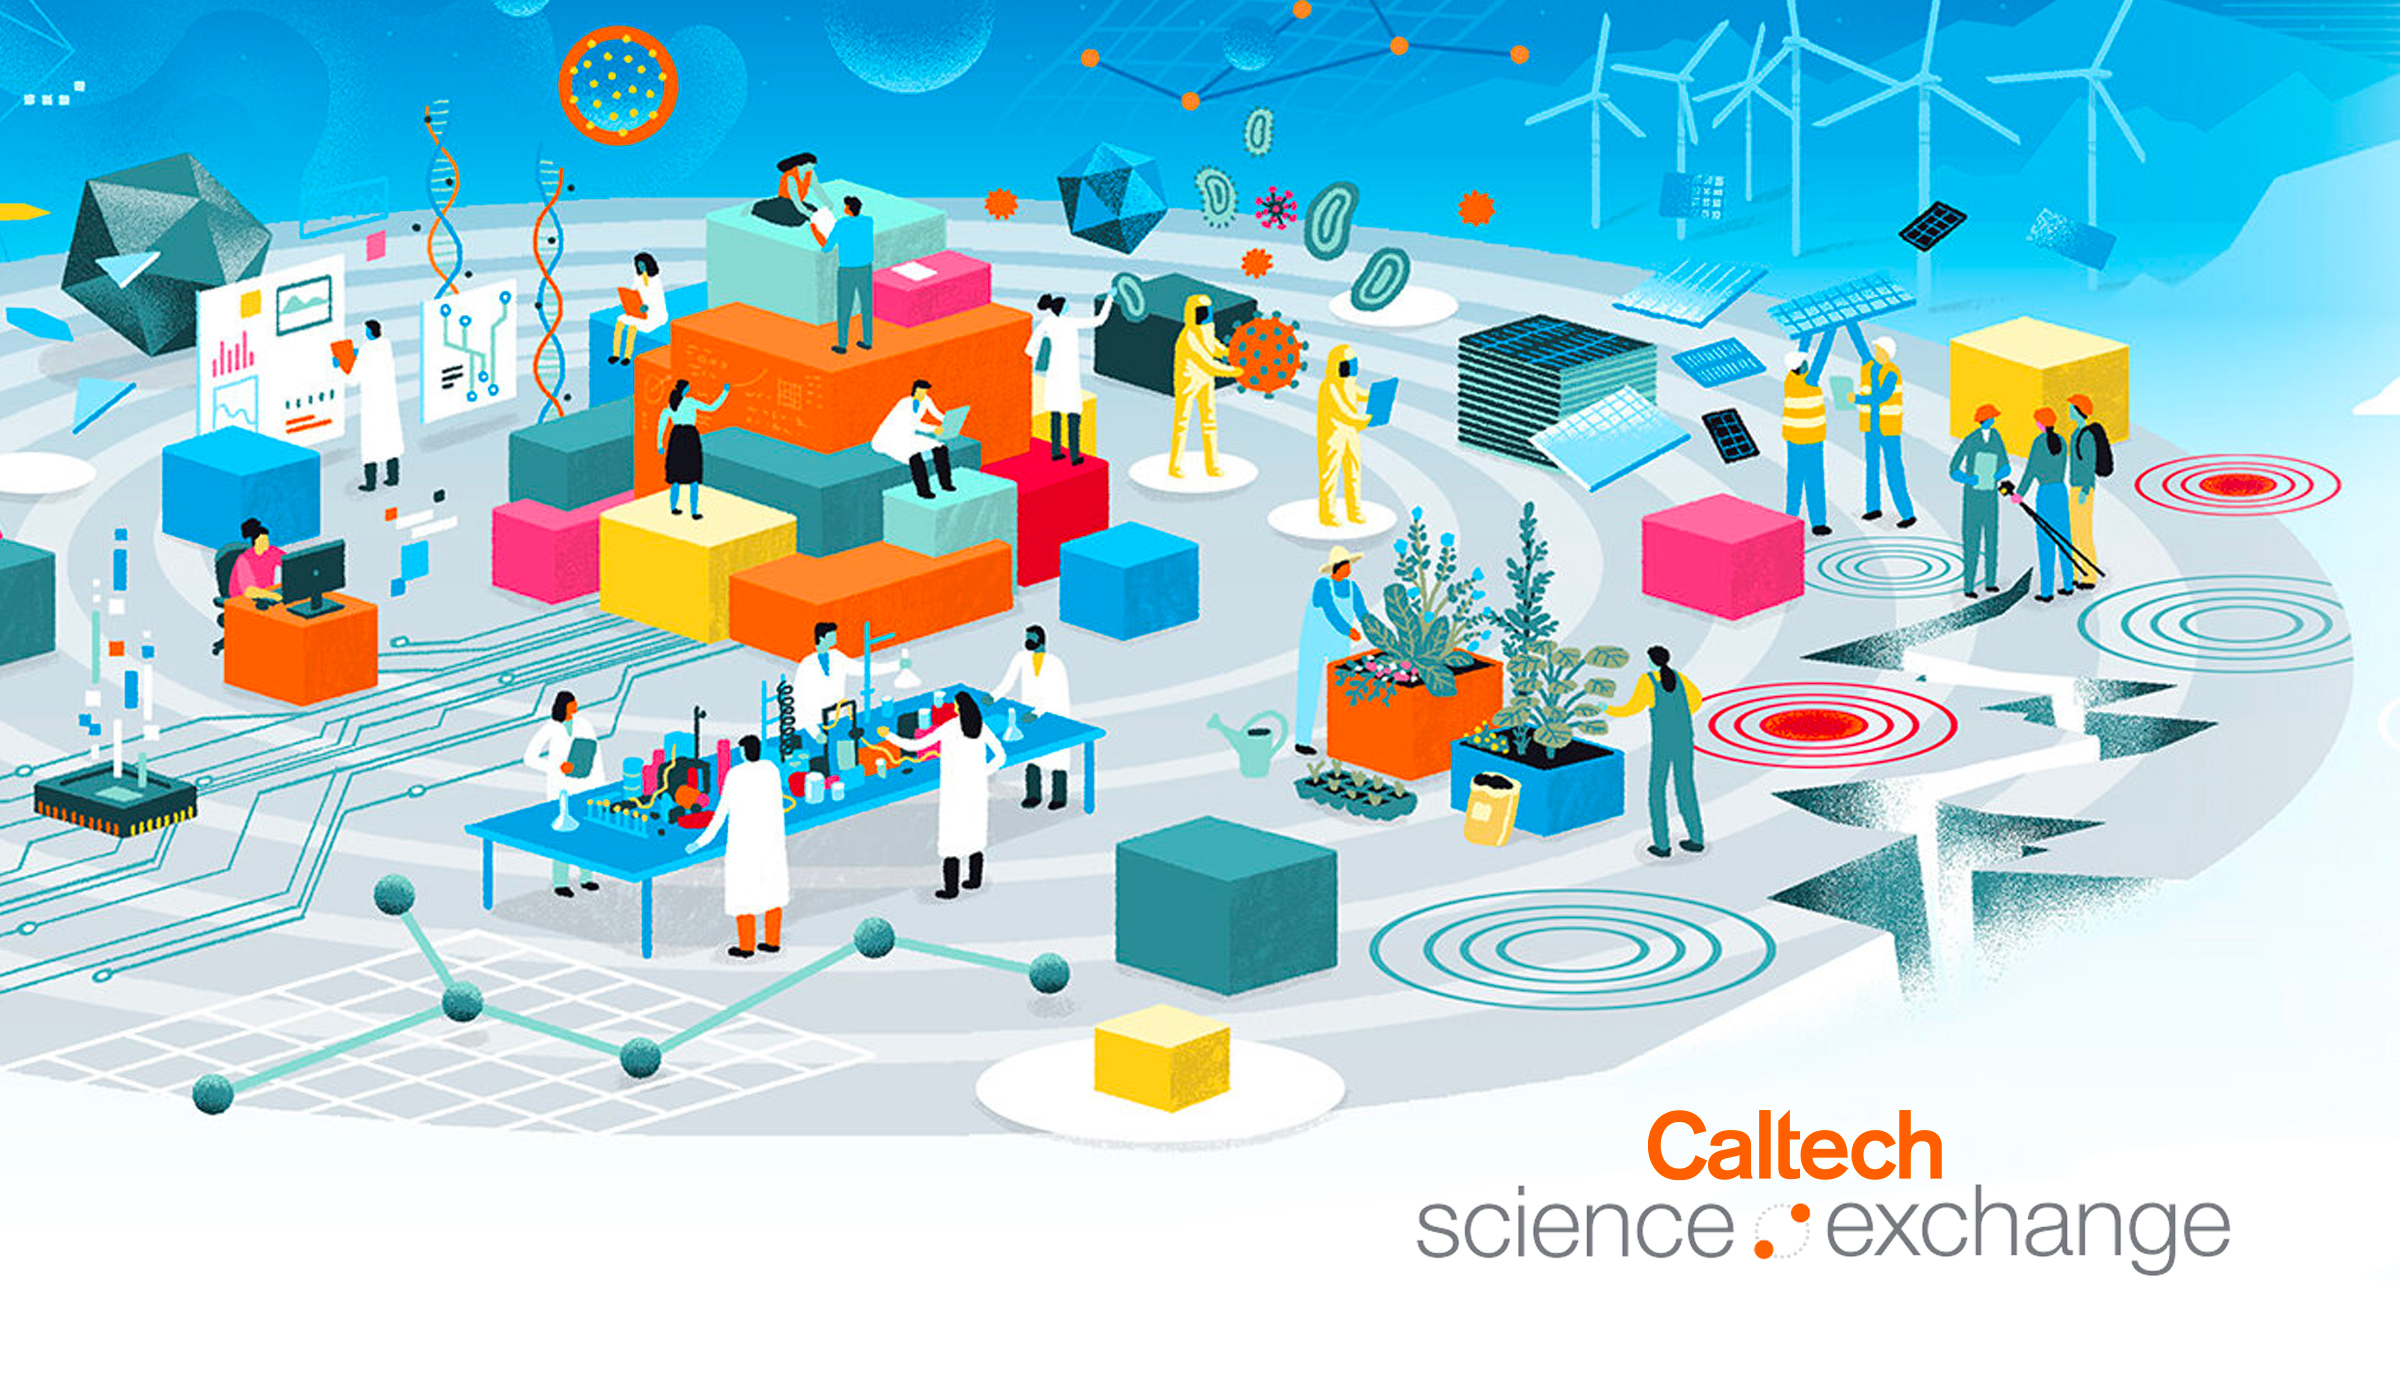 Introducing the Caltech Science Exchange